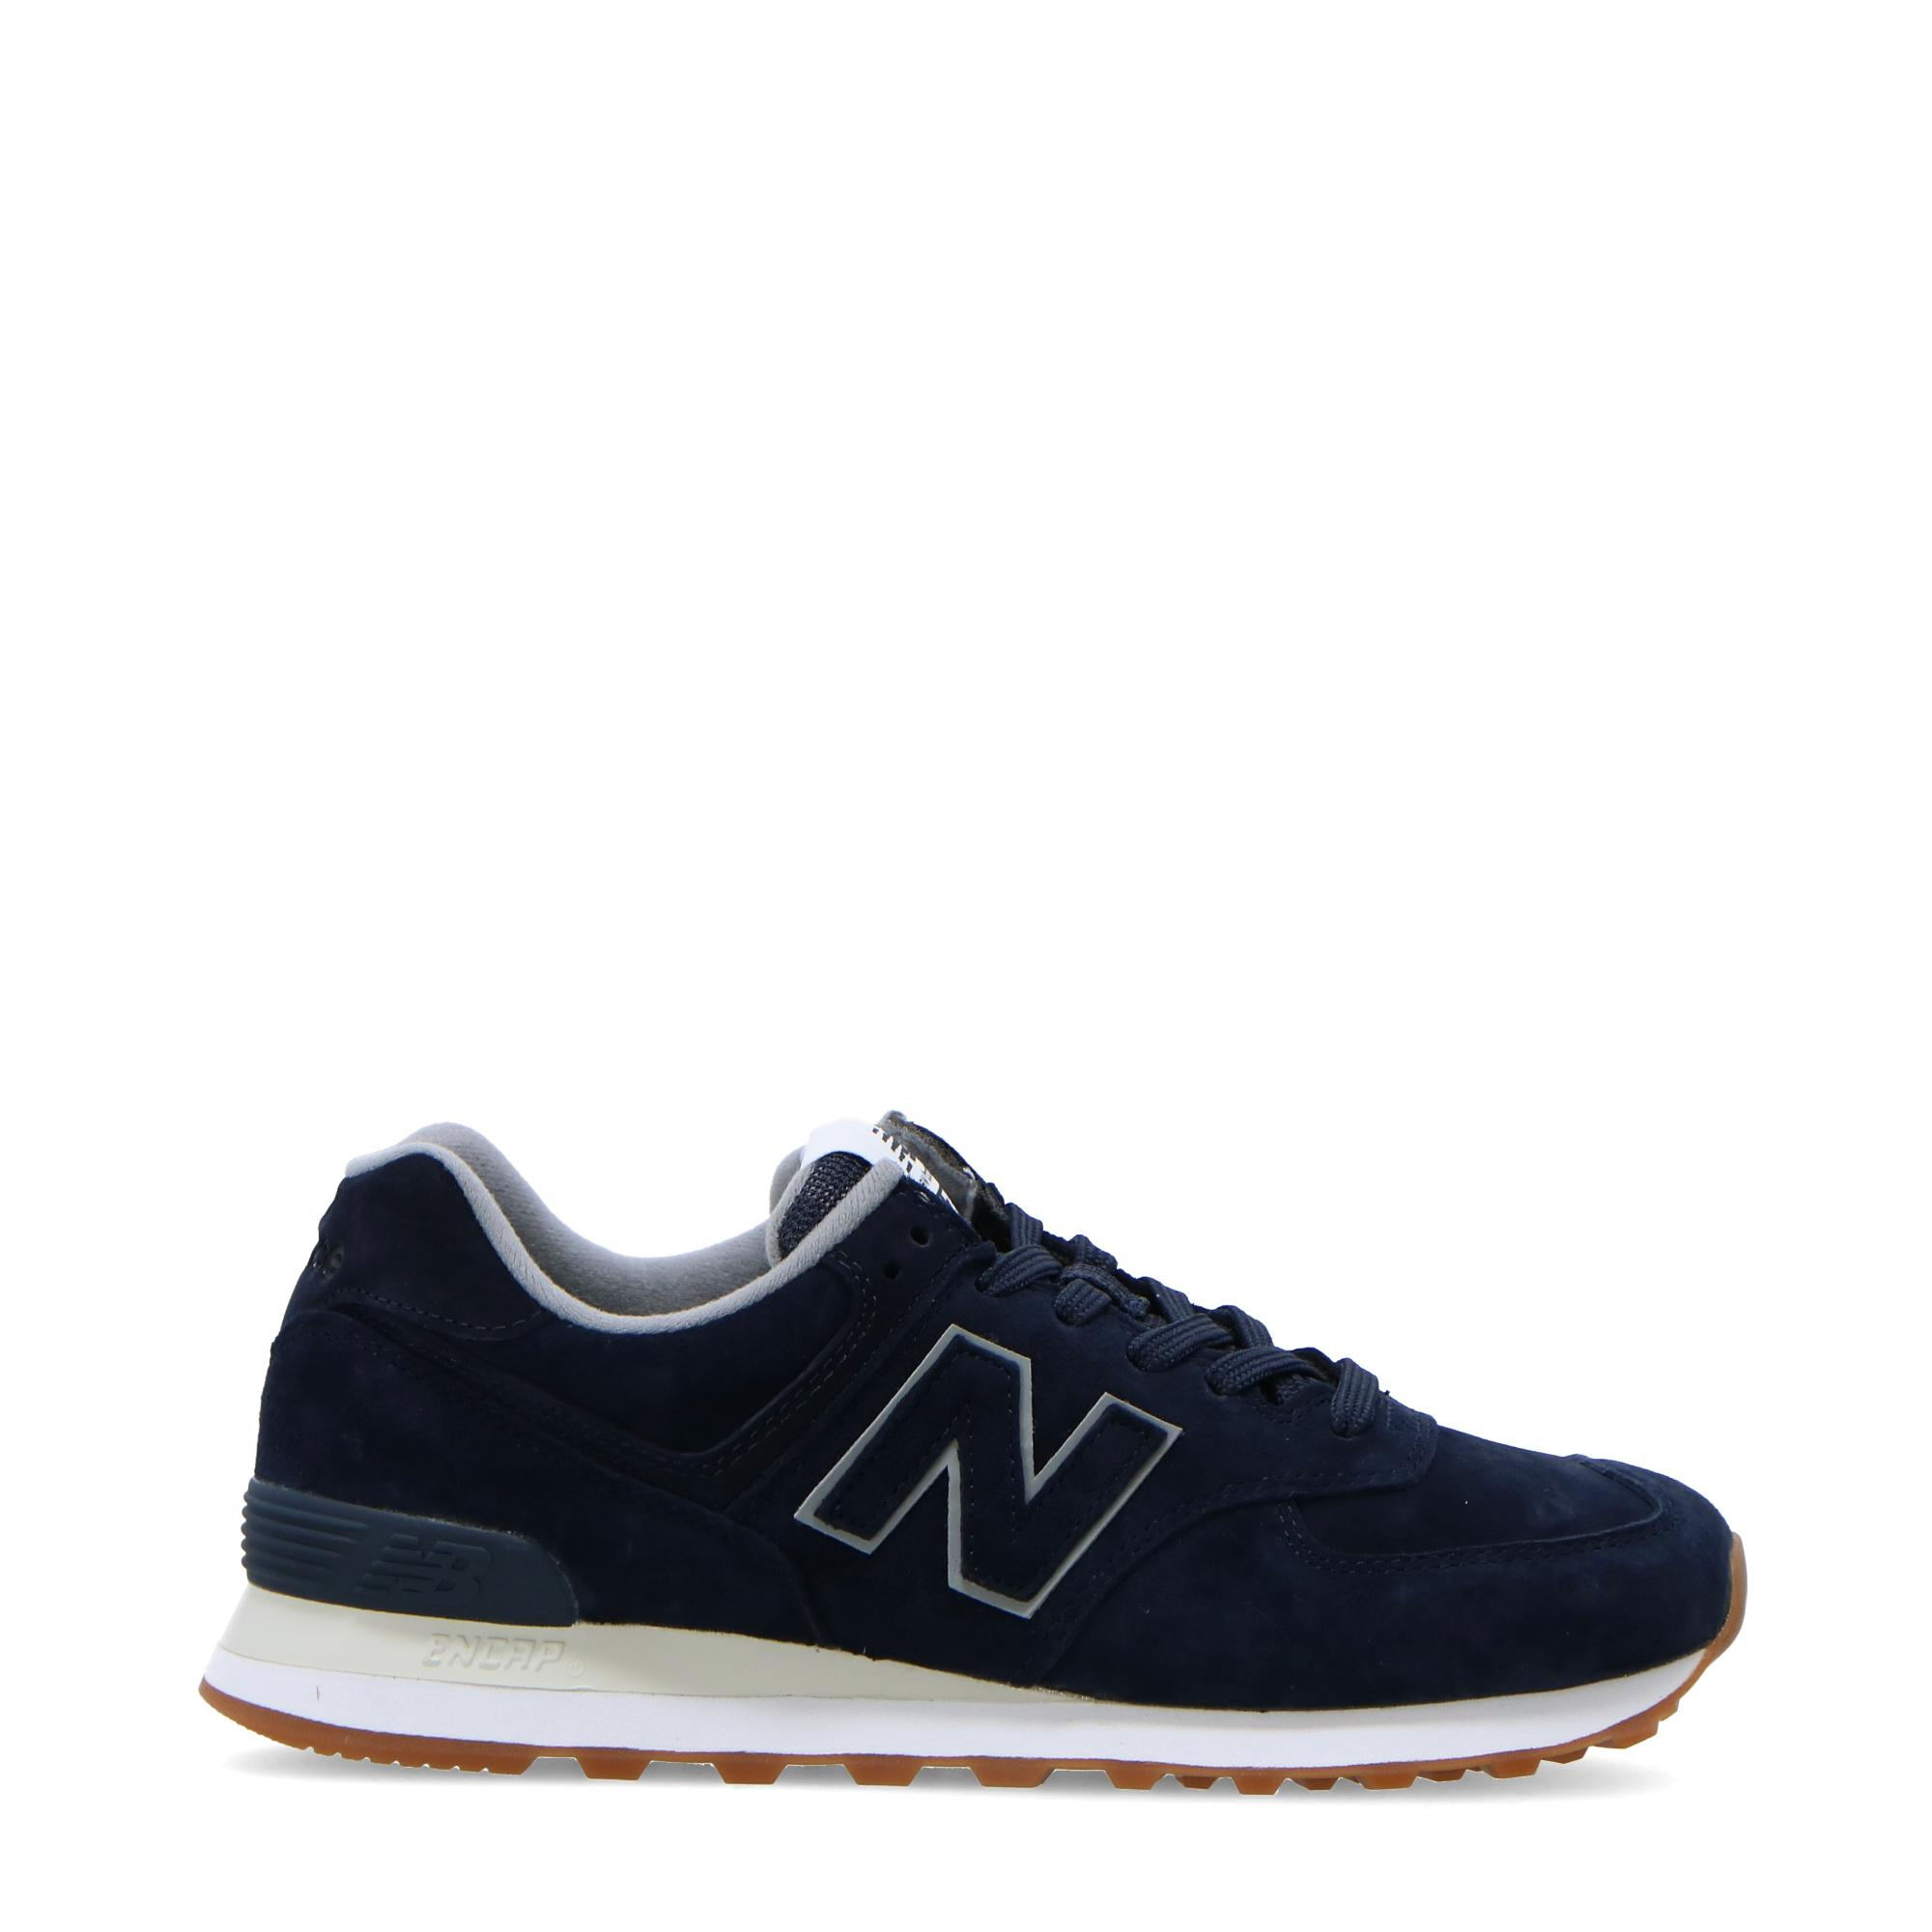 newest 0a64b e30c1 NEW BALANCE 574